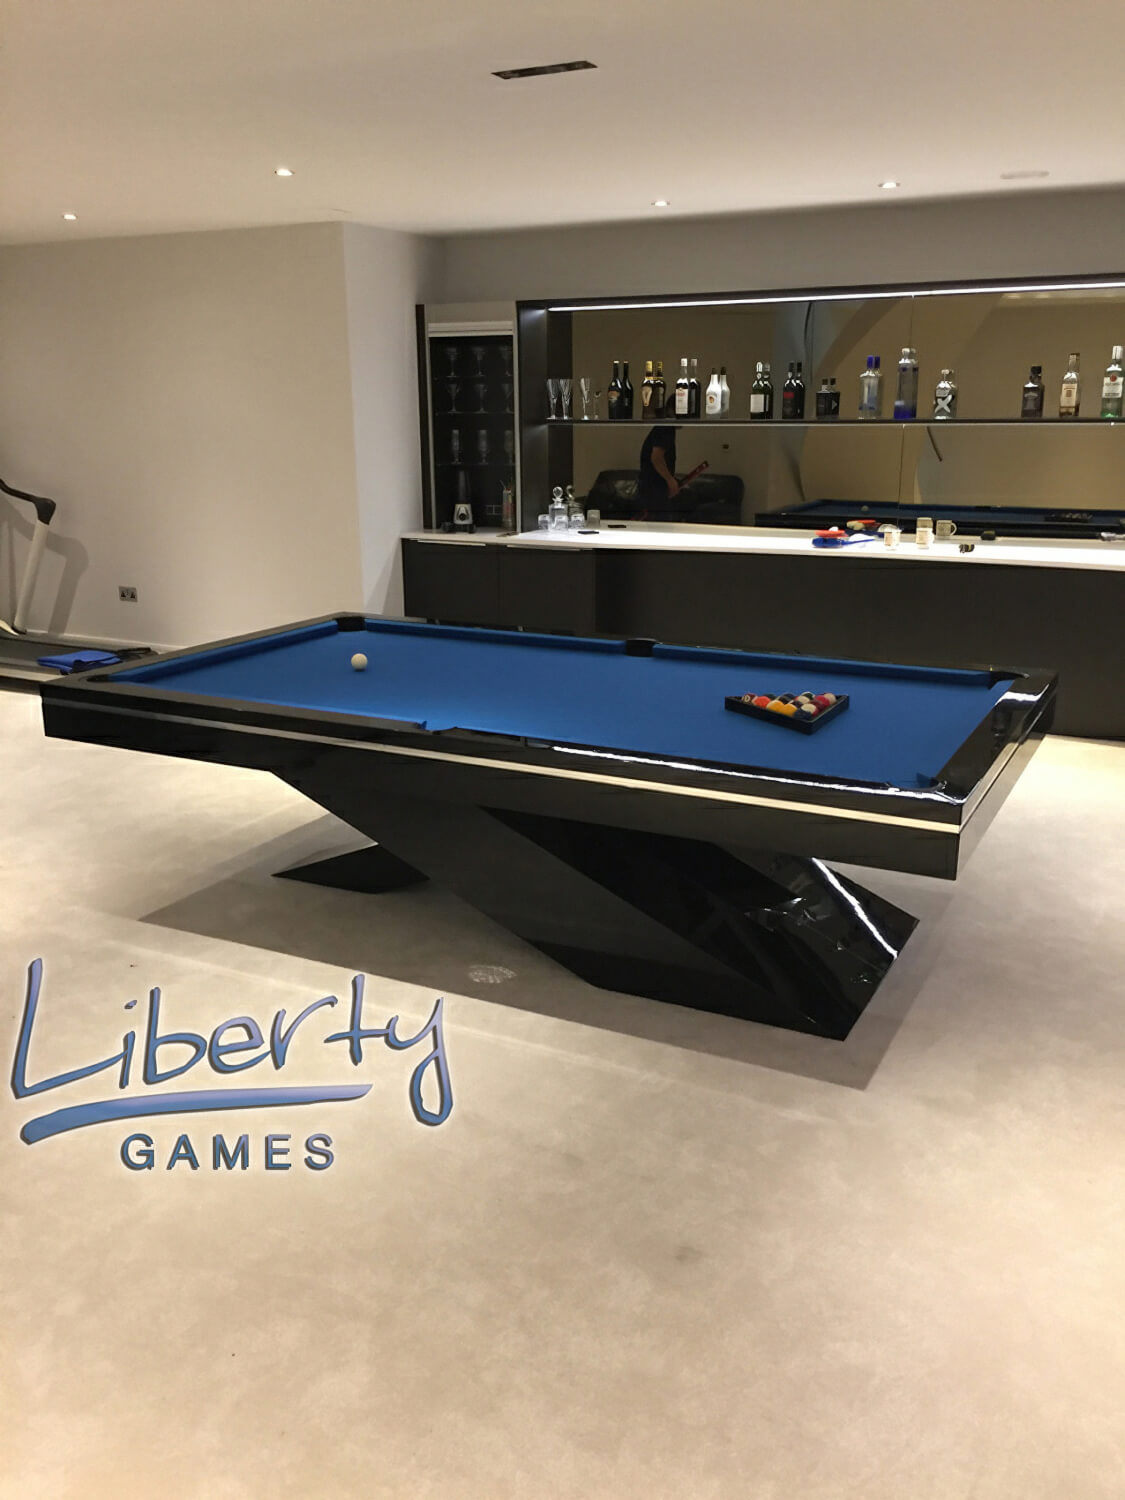 Olympus Pool Table Liberty Games - Luxury billiards table